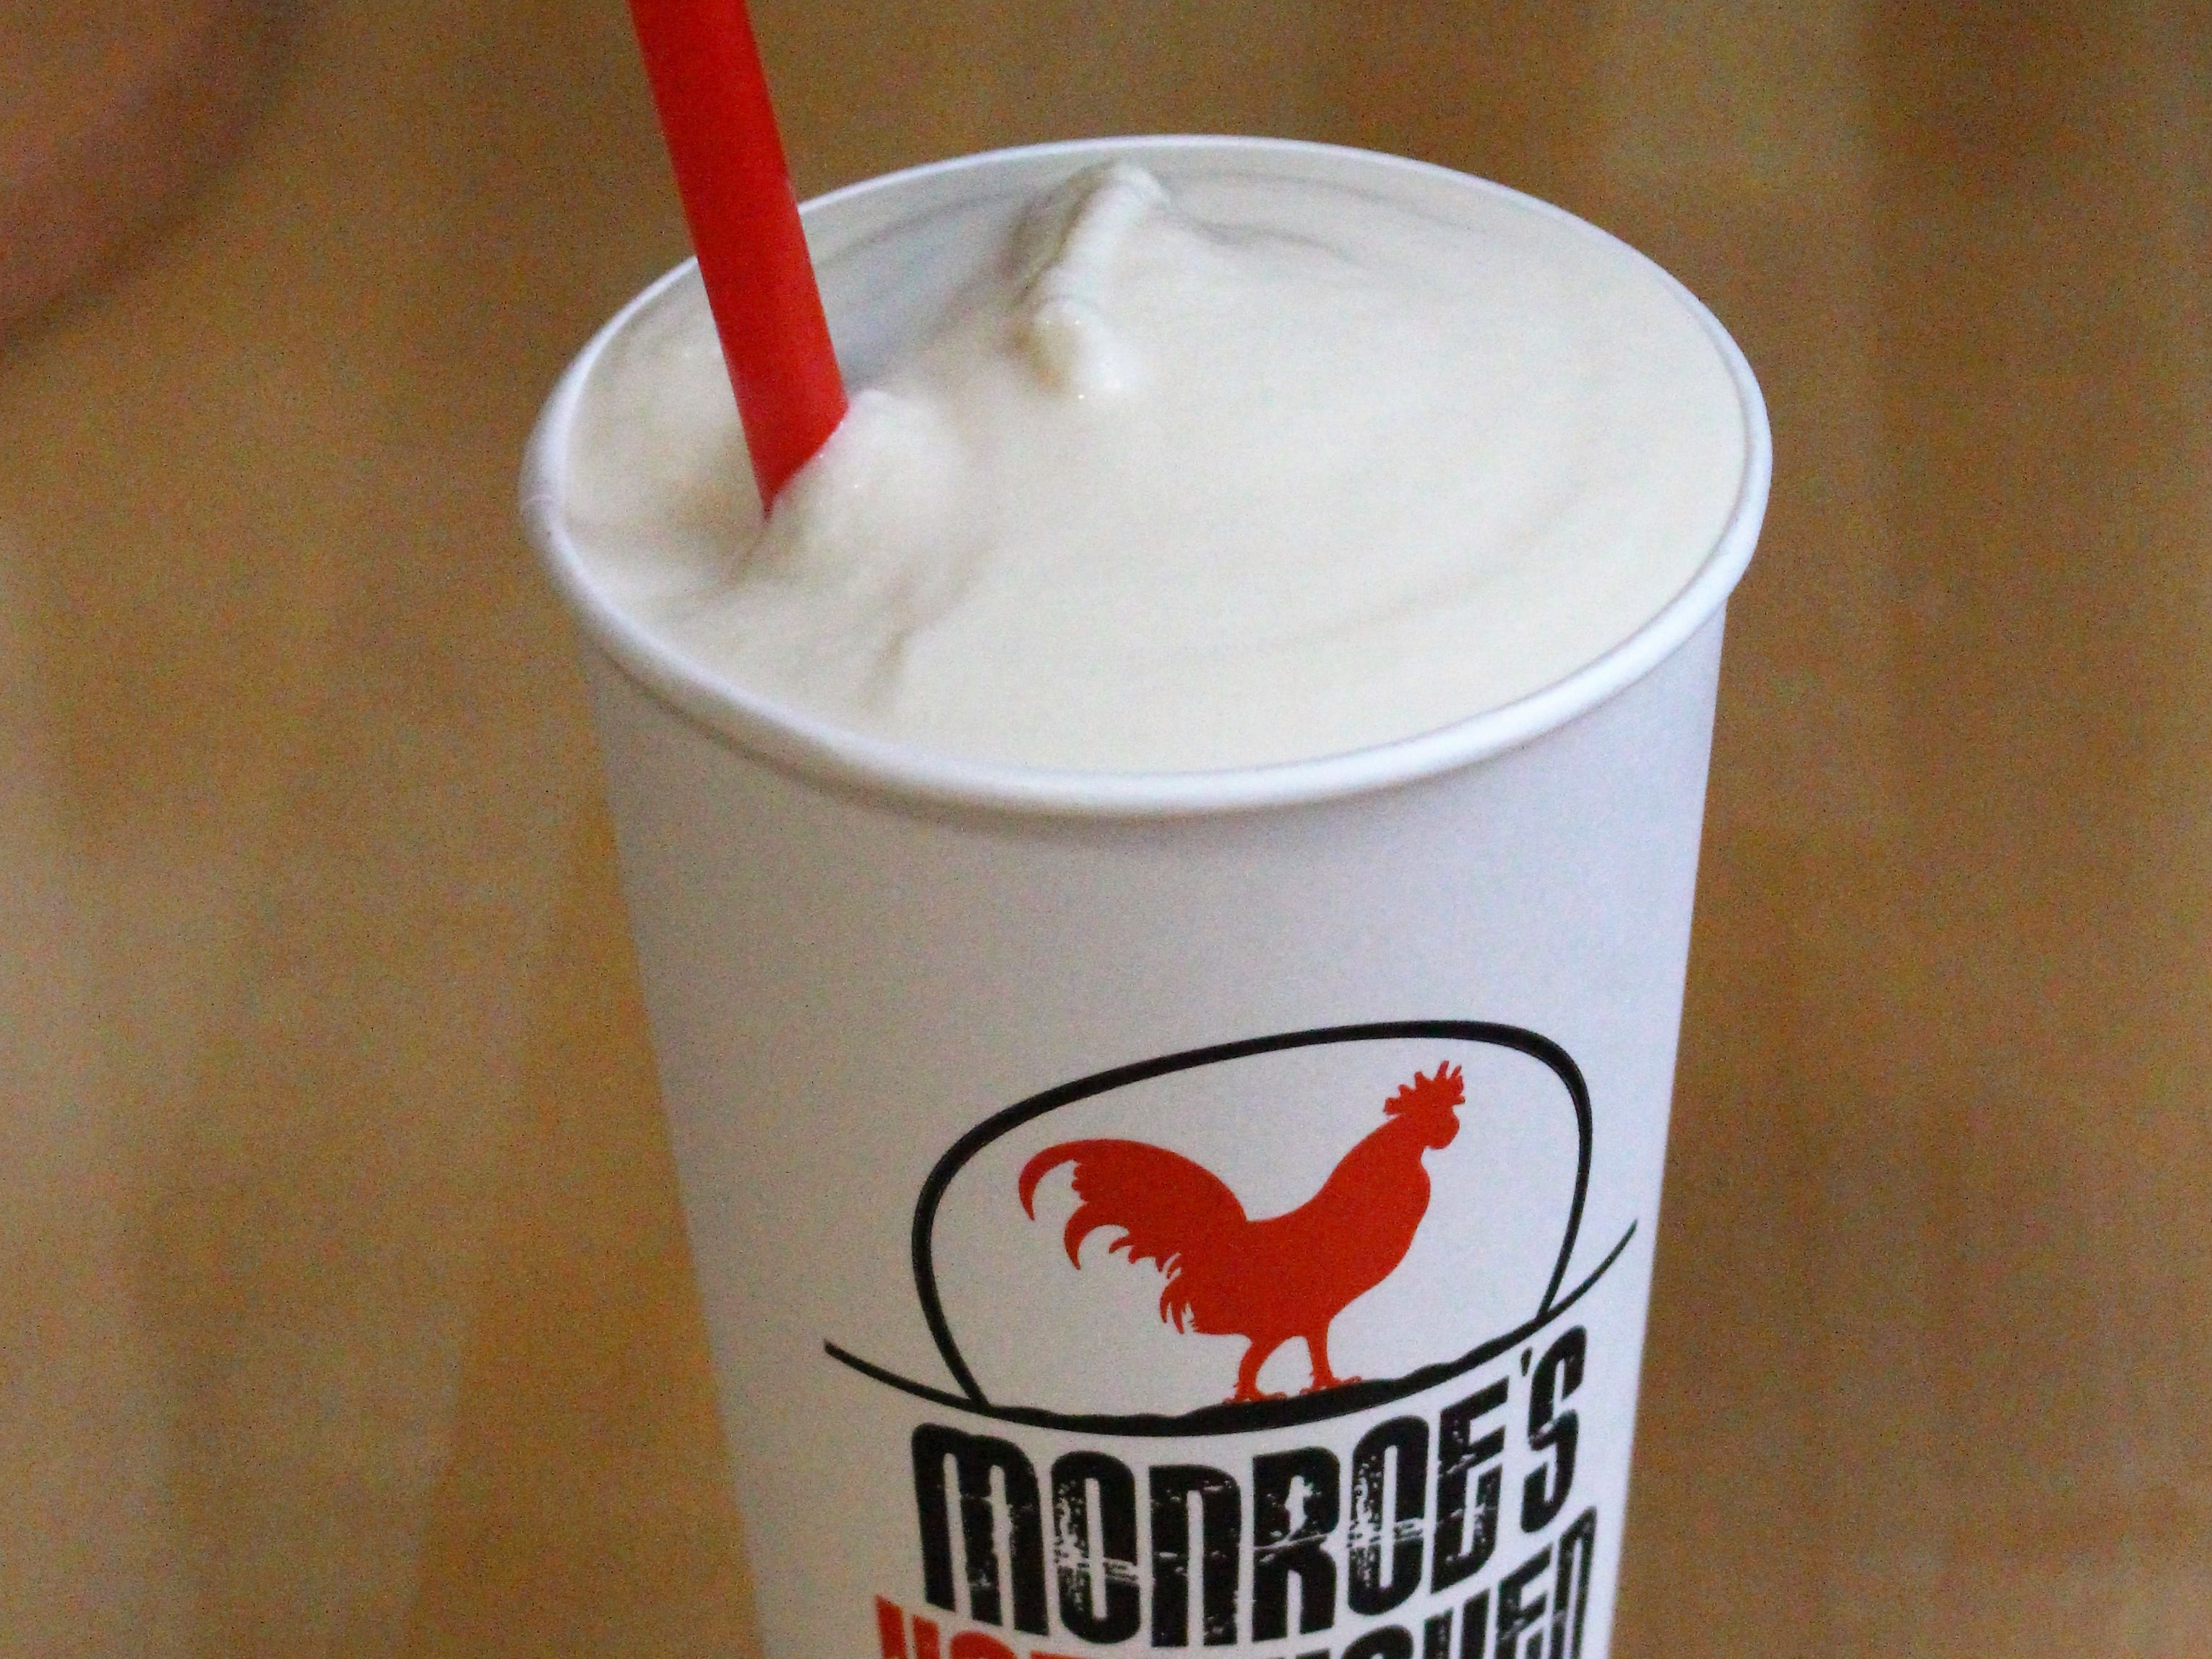 In addition to housemade moon pies, Monroe's Hot Chicken in downtown Phoenix offers milk shakes and root beer floats.